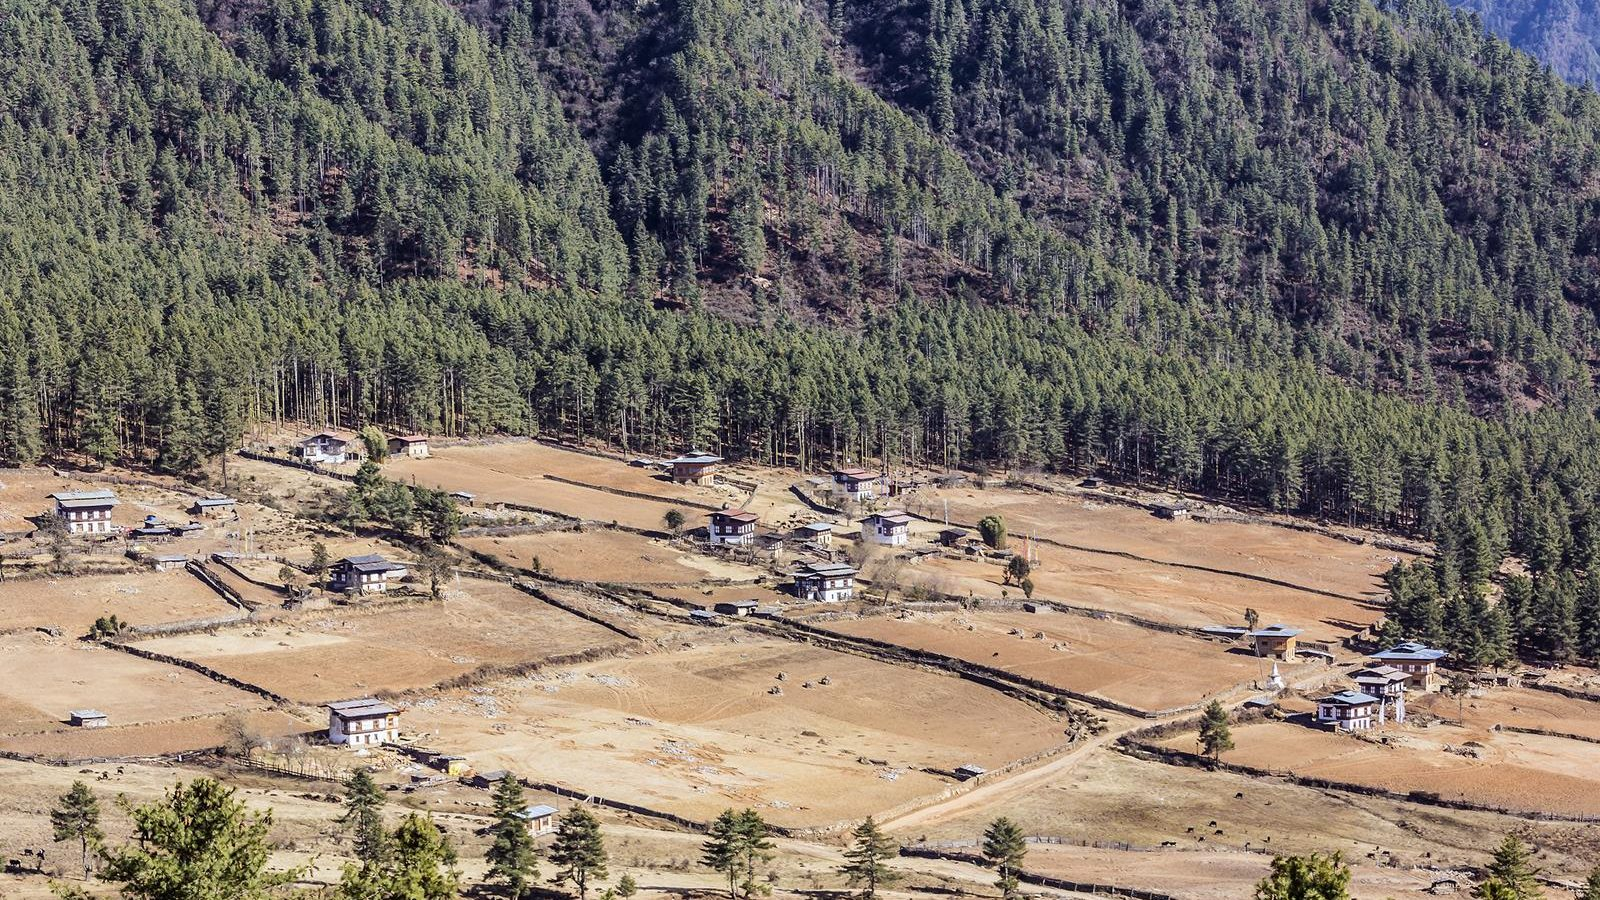 gangtey village is a beautiful village with a well known monastery in Bhutan.